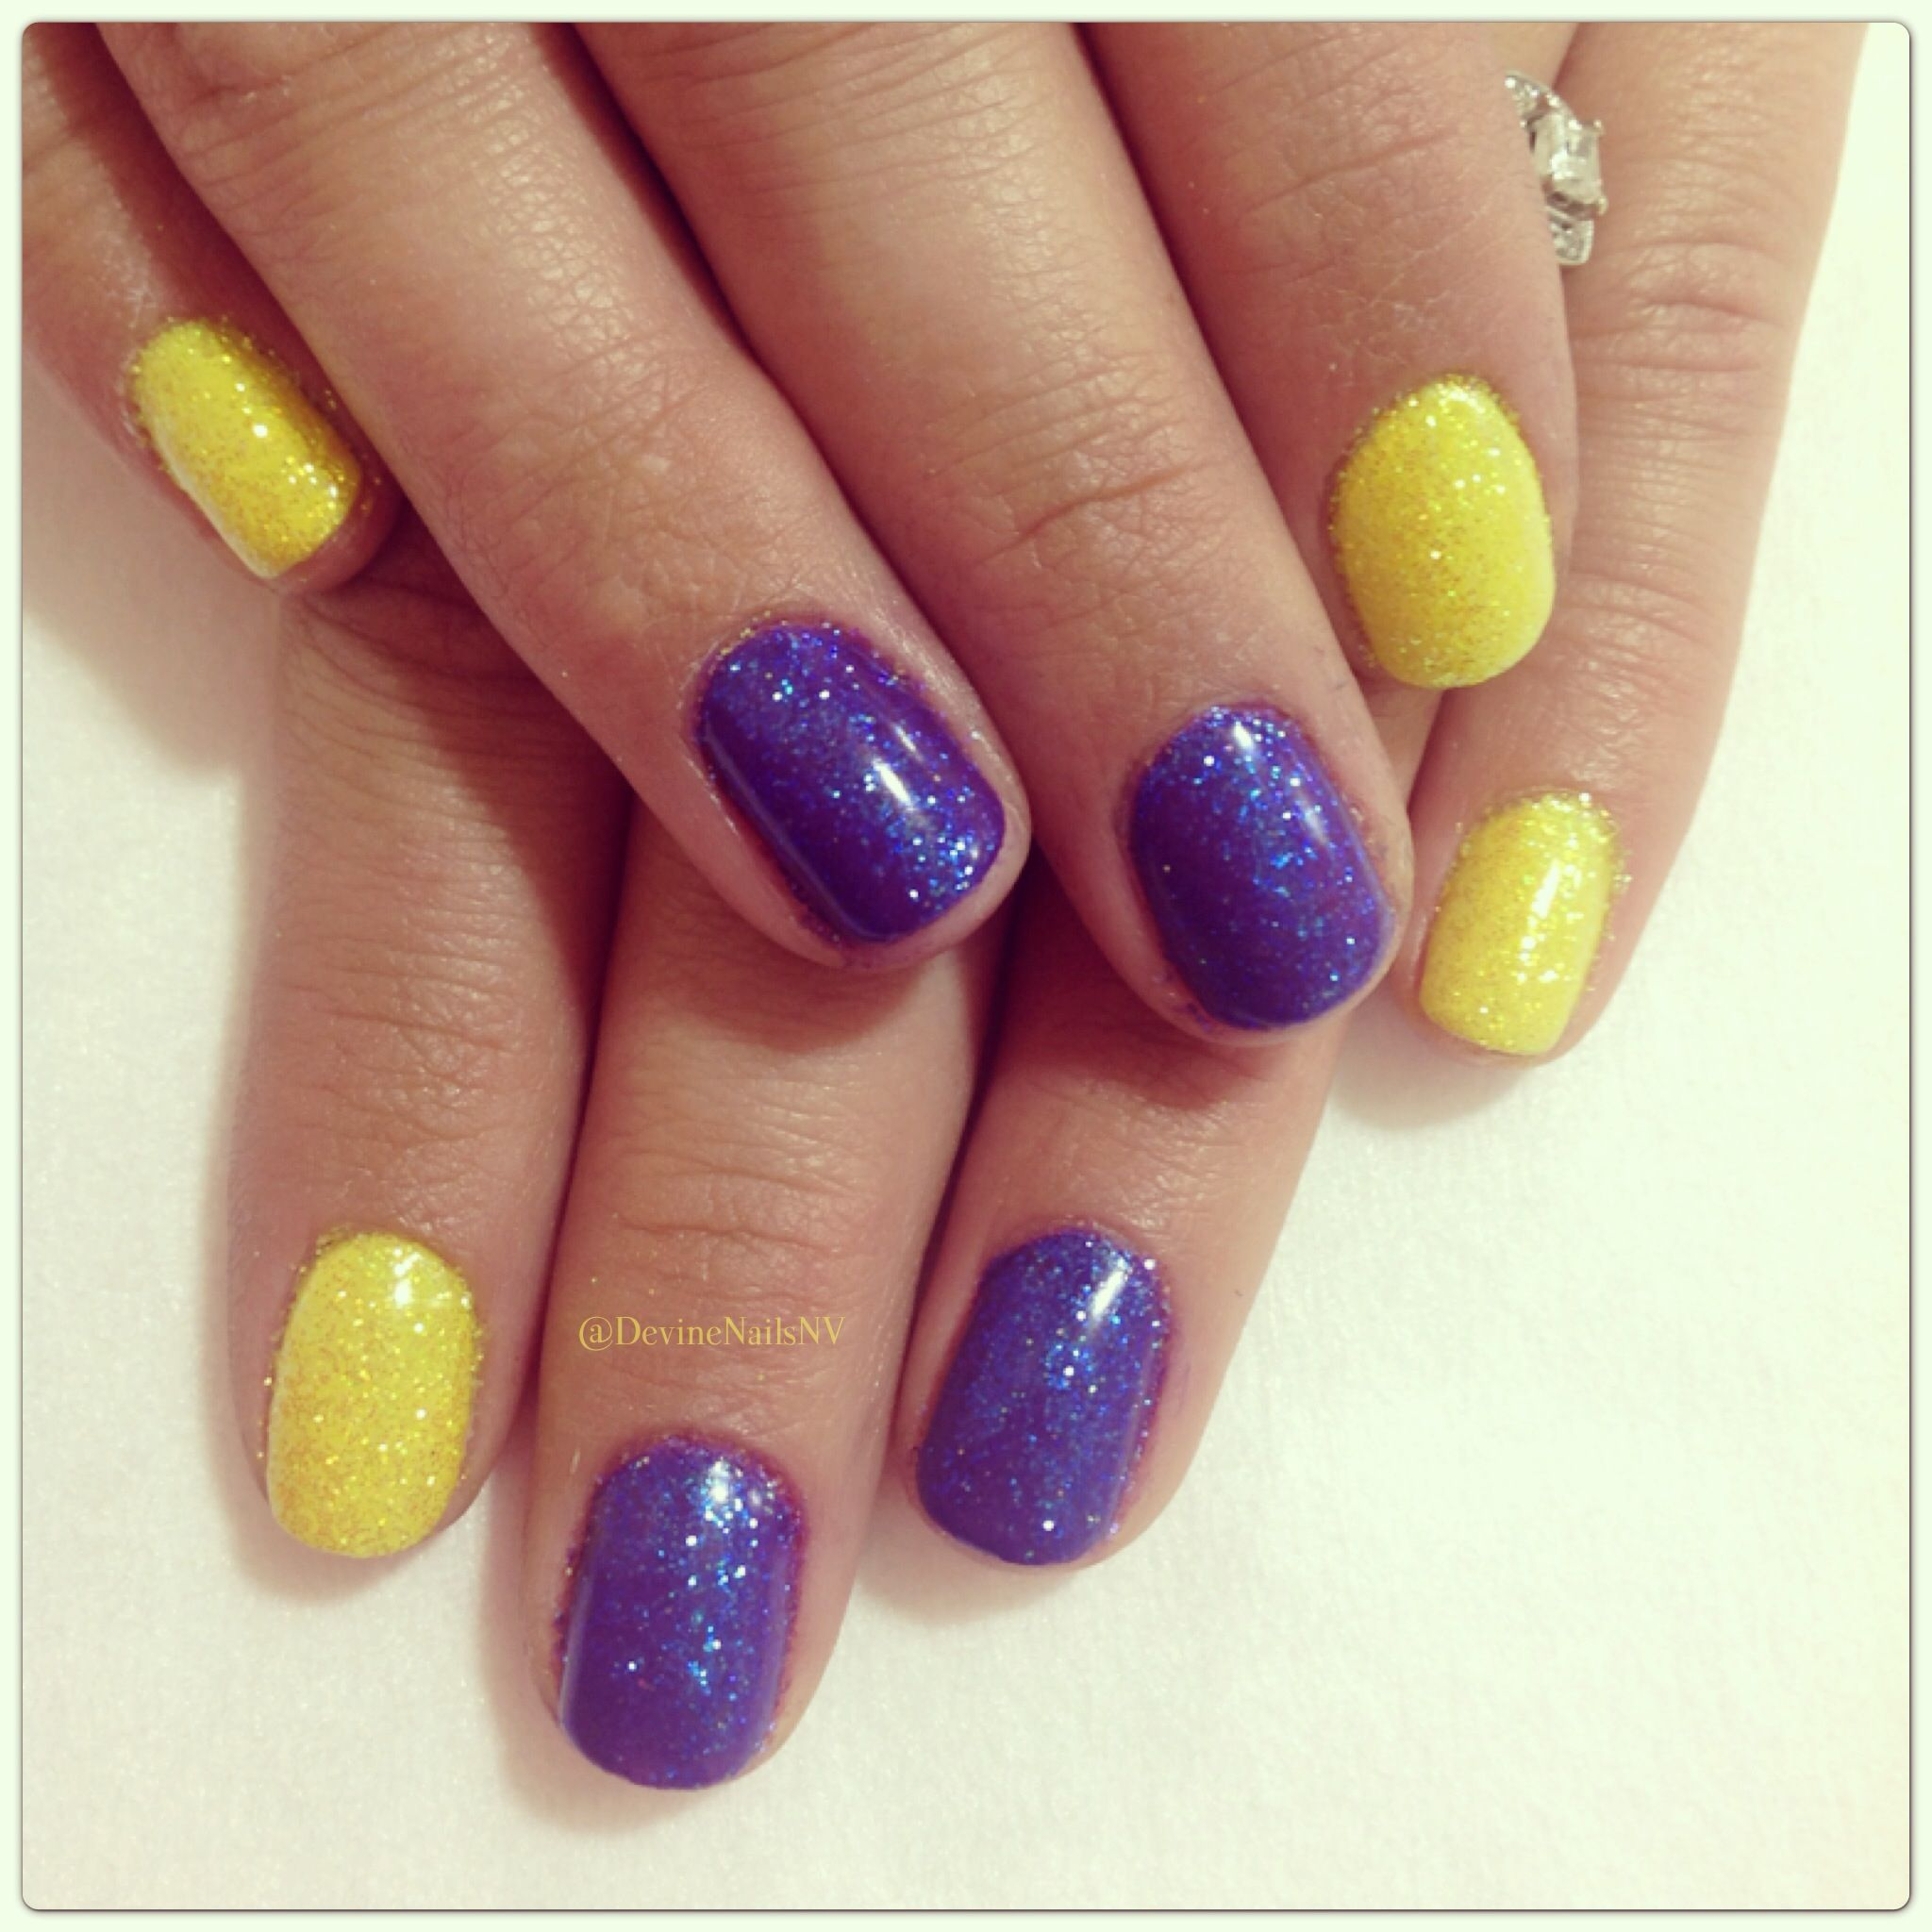 Neon yellow and purple nails 2013 @devinenailsnv | Nails by Chelsea ...